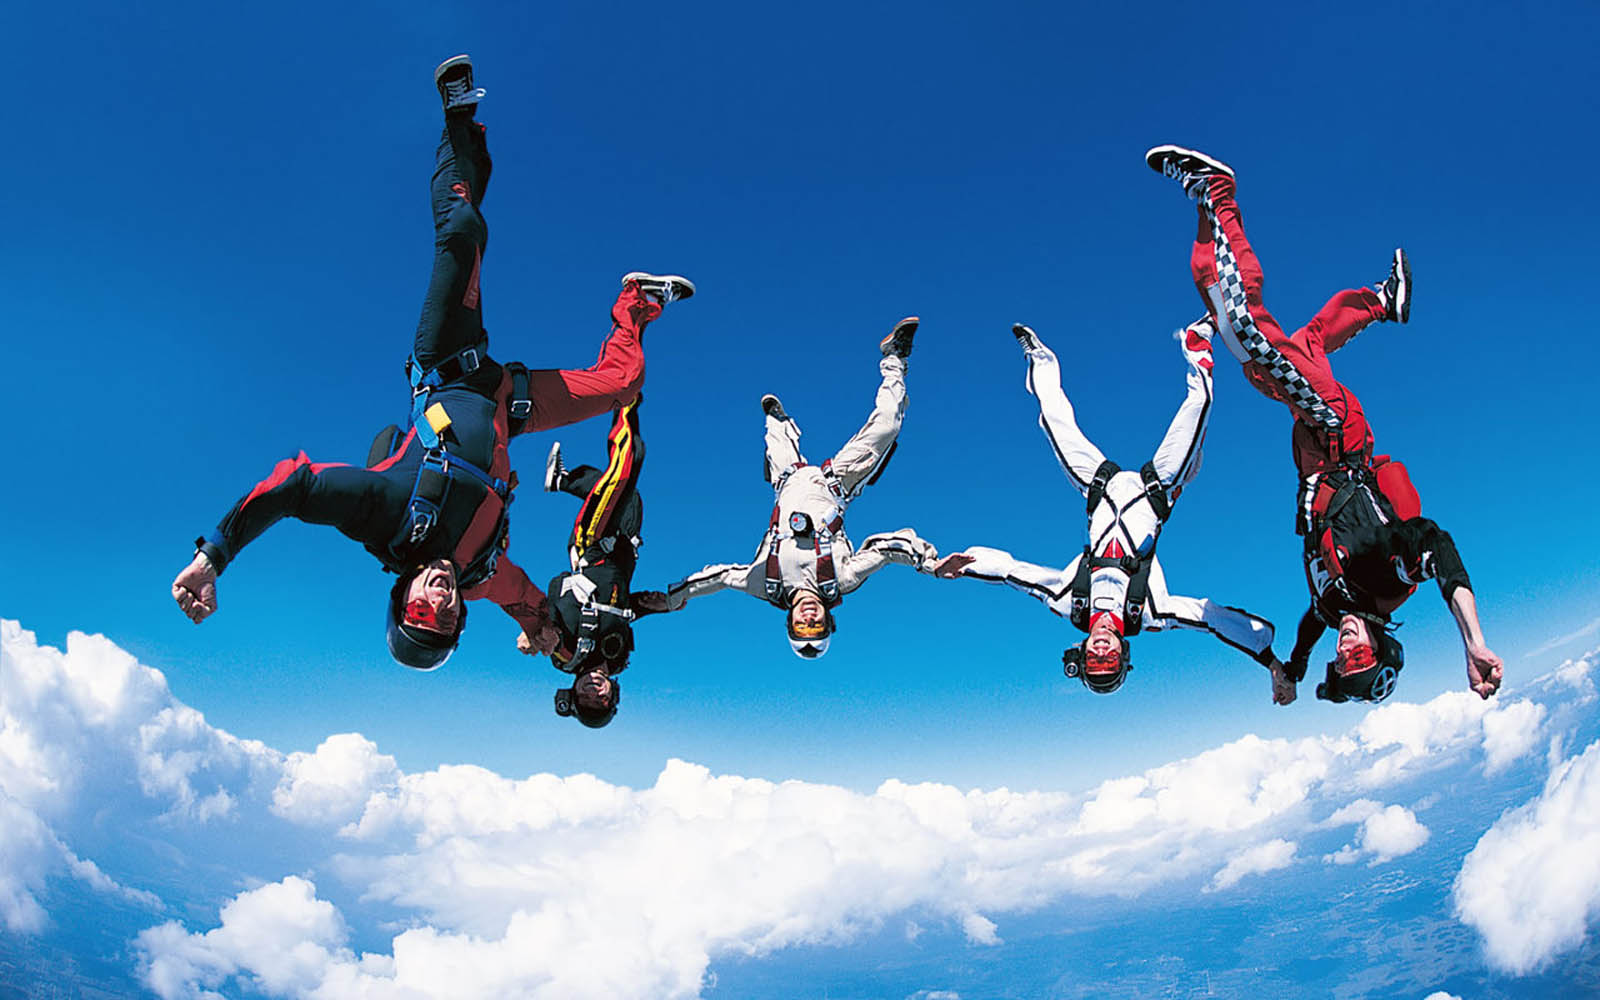 Wallpapers skydiving - Wallpaper photos ...